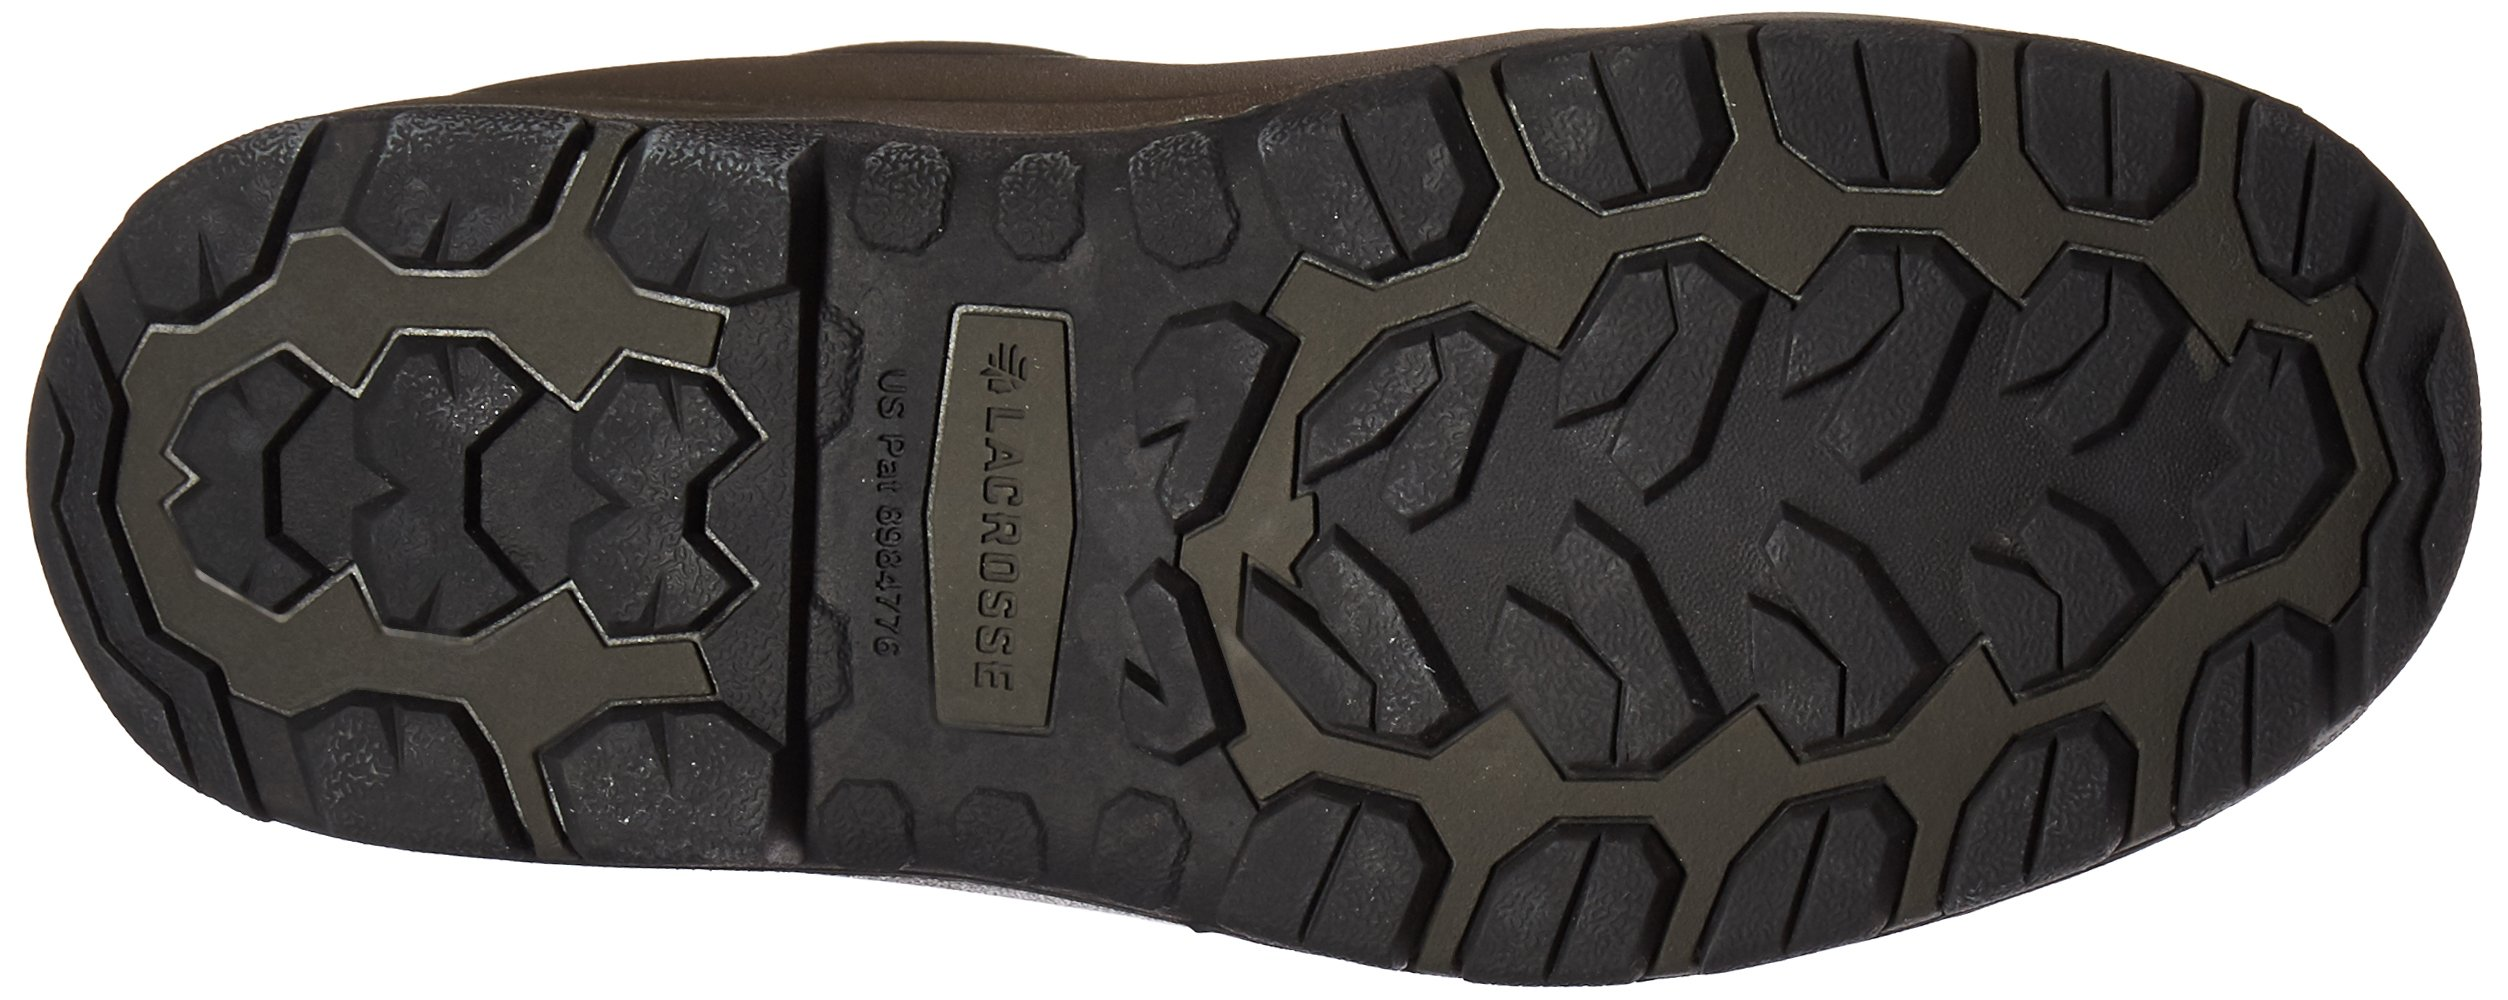 Lacrosse Men's Aerohead Sport 16'' 3.5MM Hunting Shoes Realtree Extra 13 M US by Lacrosse (Image #3)